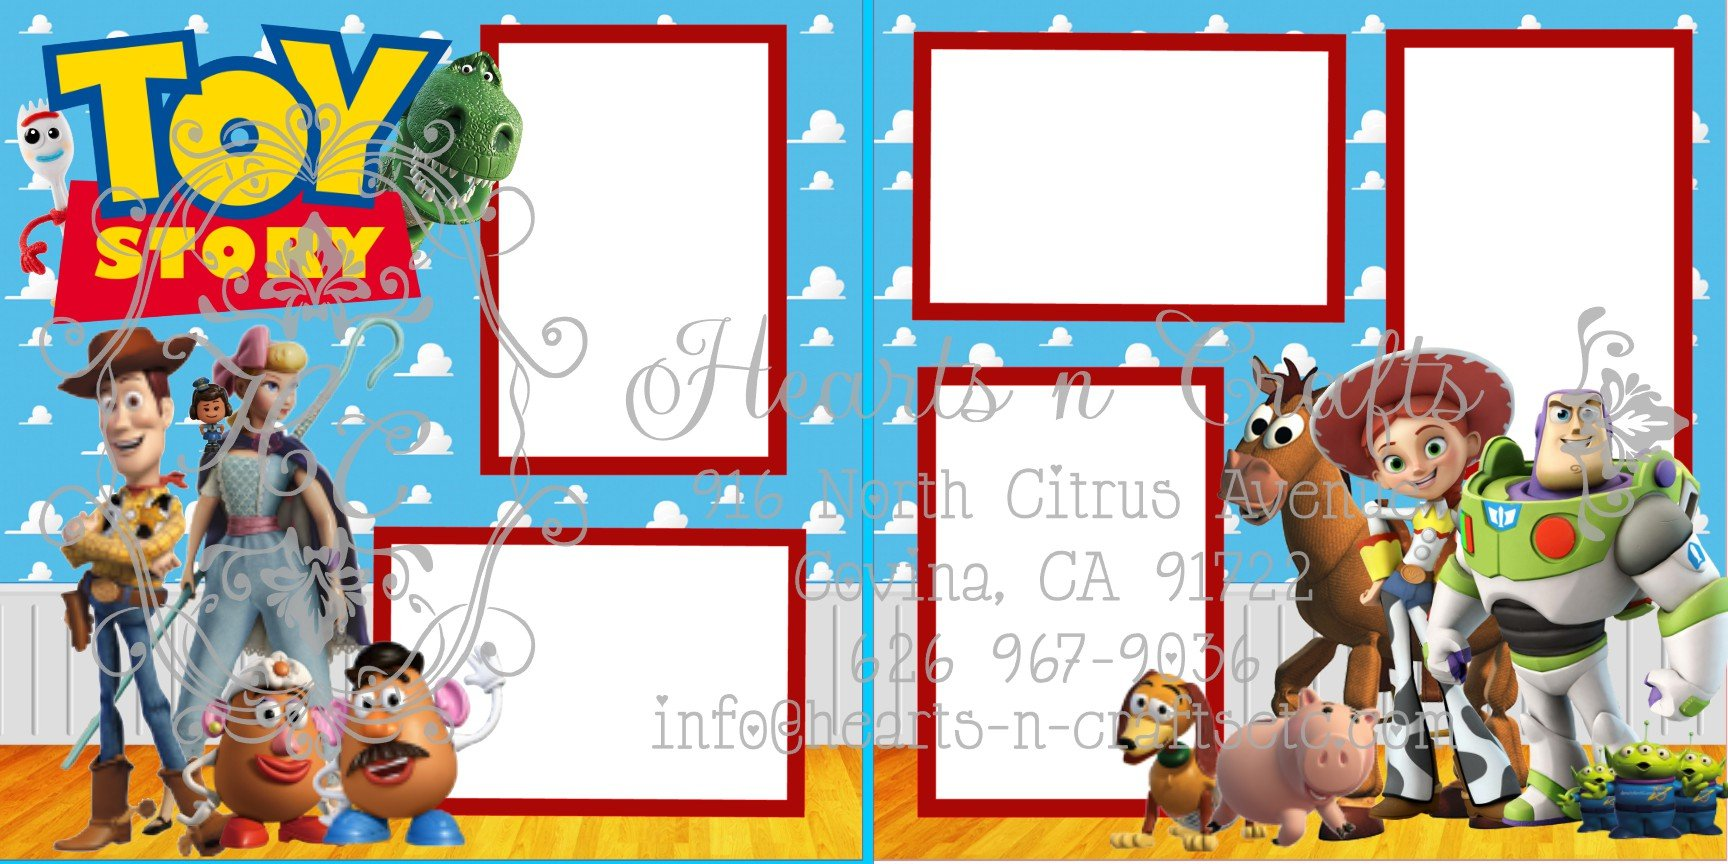 Toy Story #2 - 2 Page Layout